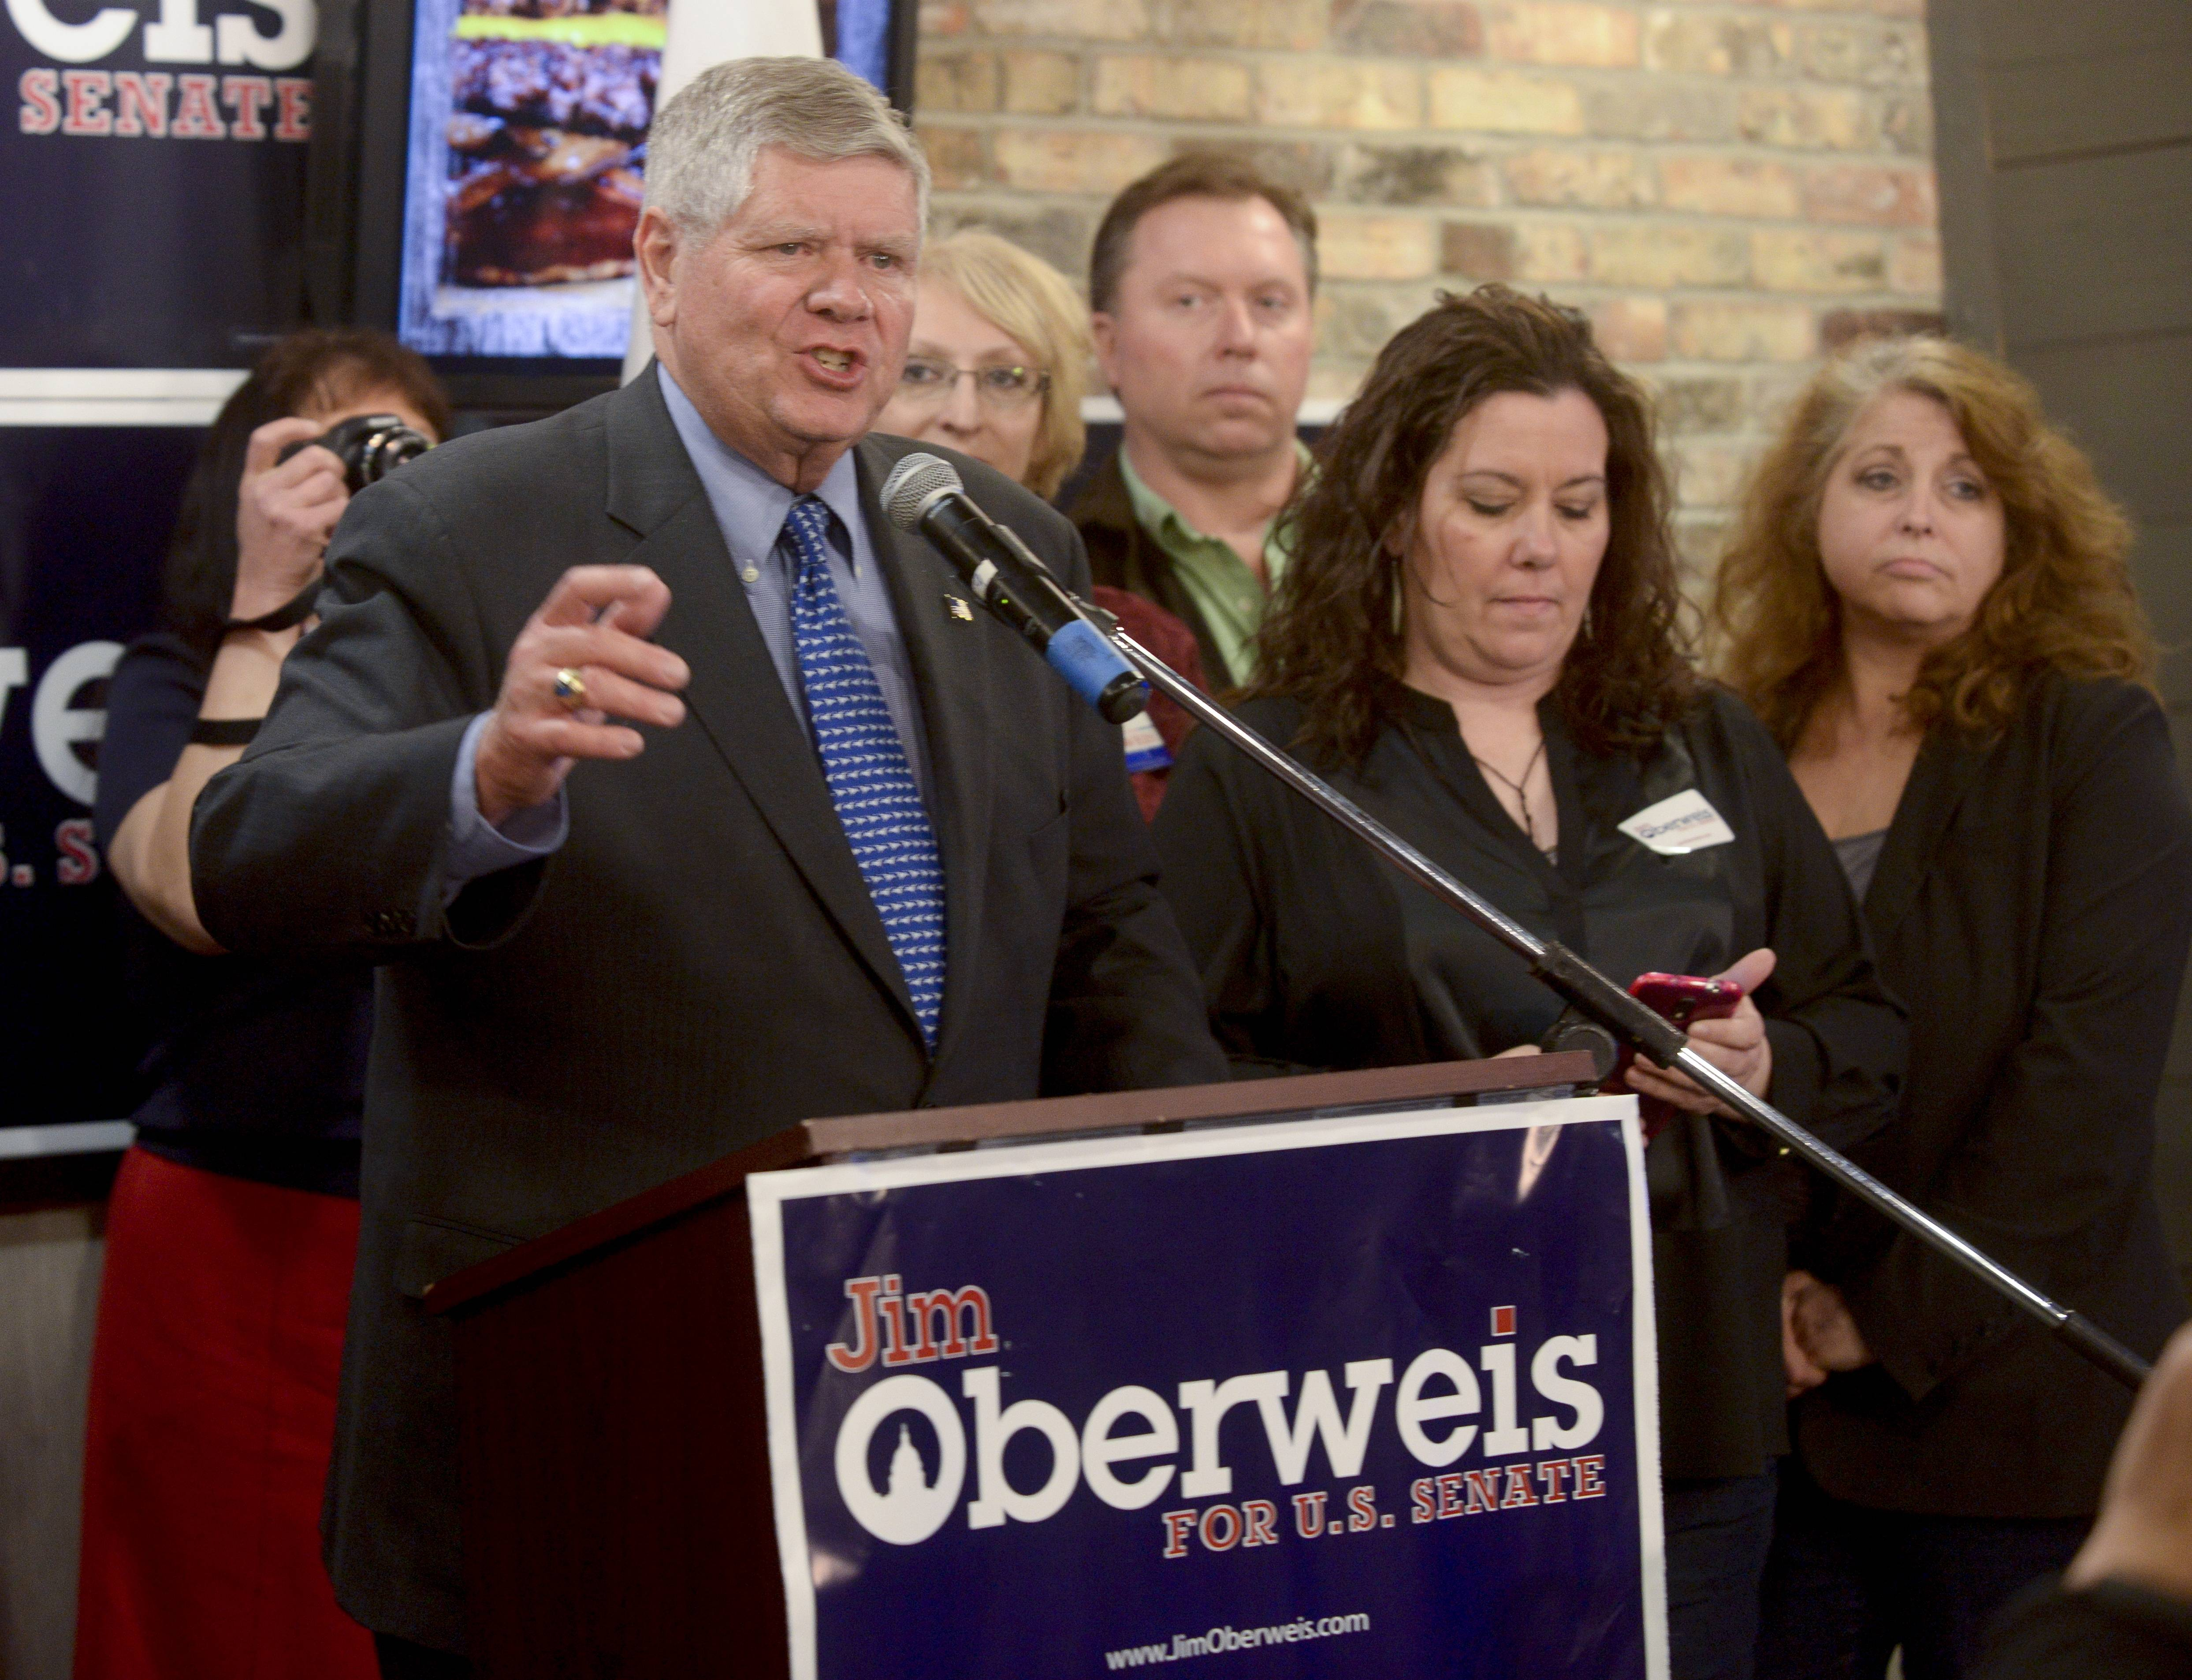 Jim Oberweis speaks after winning the Republican nomination for the U.S. Senate. Overweis will now face Democratic Sen. Dick Durbin in the general election this coming November.